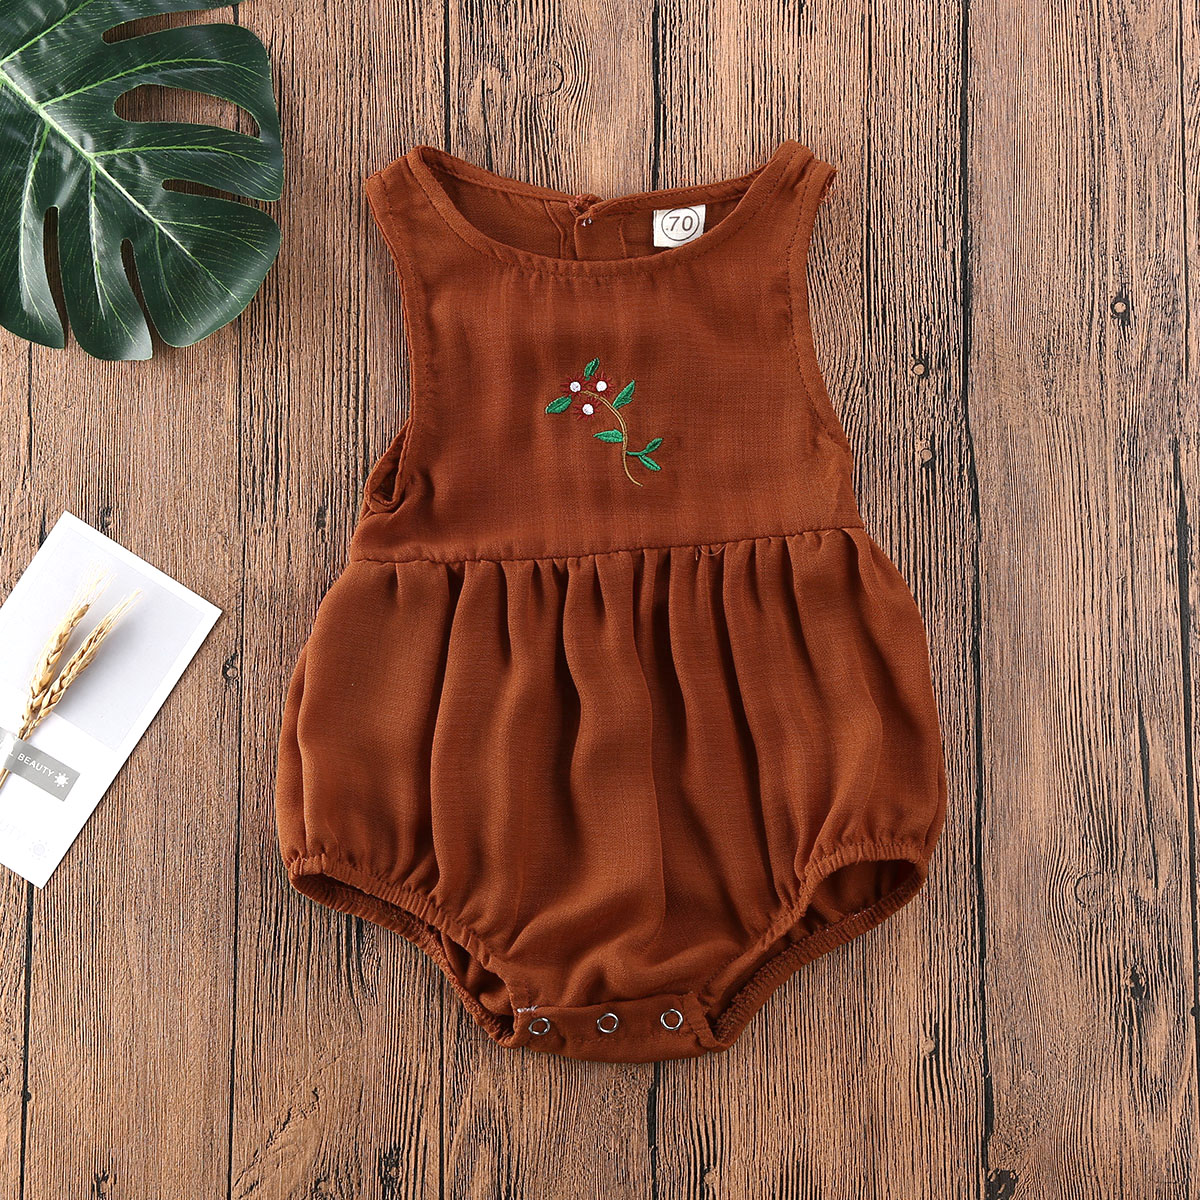 Pudcoco Newborn Baby Girl Clothes Flower Sleeveless Cotton Romper Jumpsuit One-Piece Outfit Playsuit Clothes